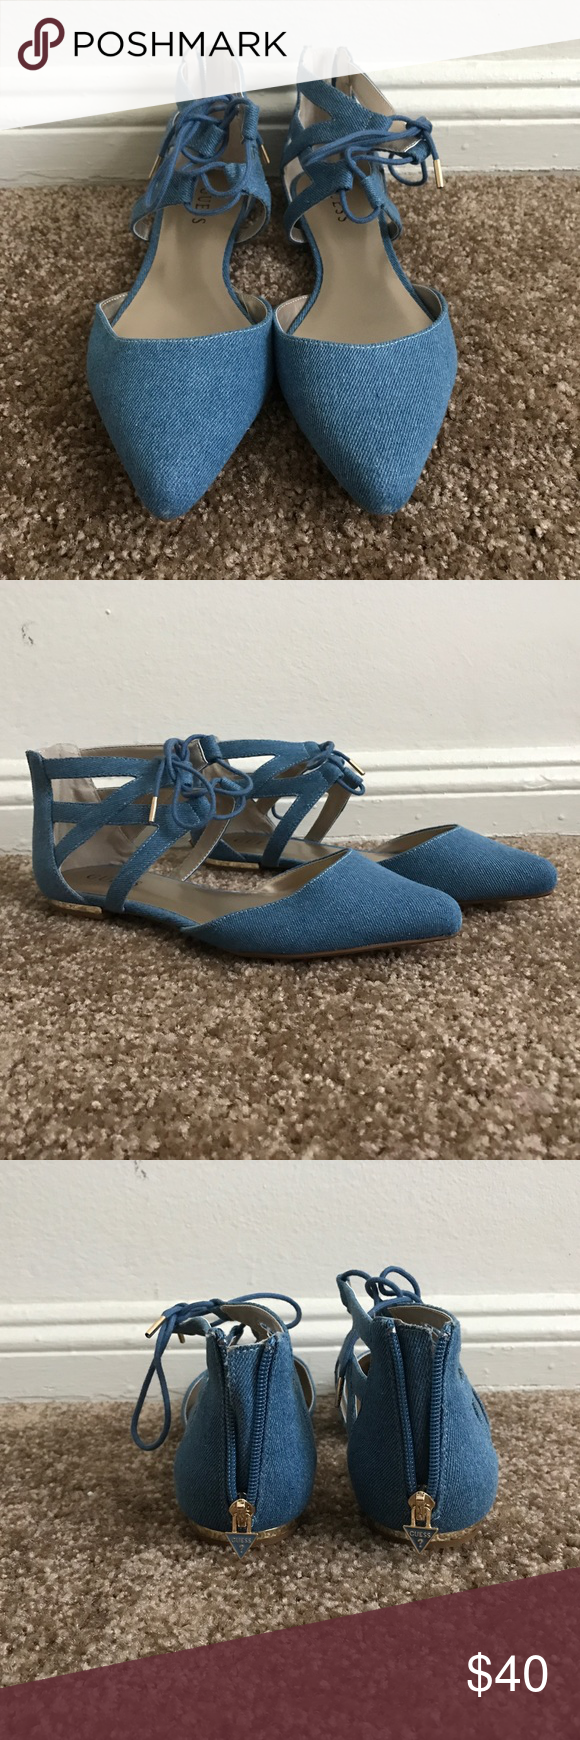 Guess Flats Guess Jeans material Flats with back zipper! New!!! Never worn in great condition!! Size 9 Guess Shoes Flats & Loafers